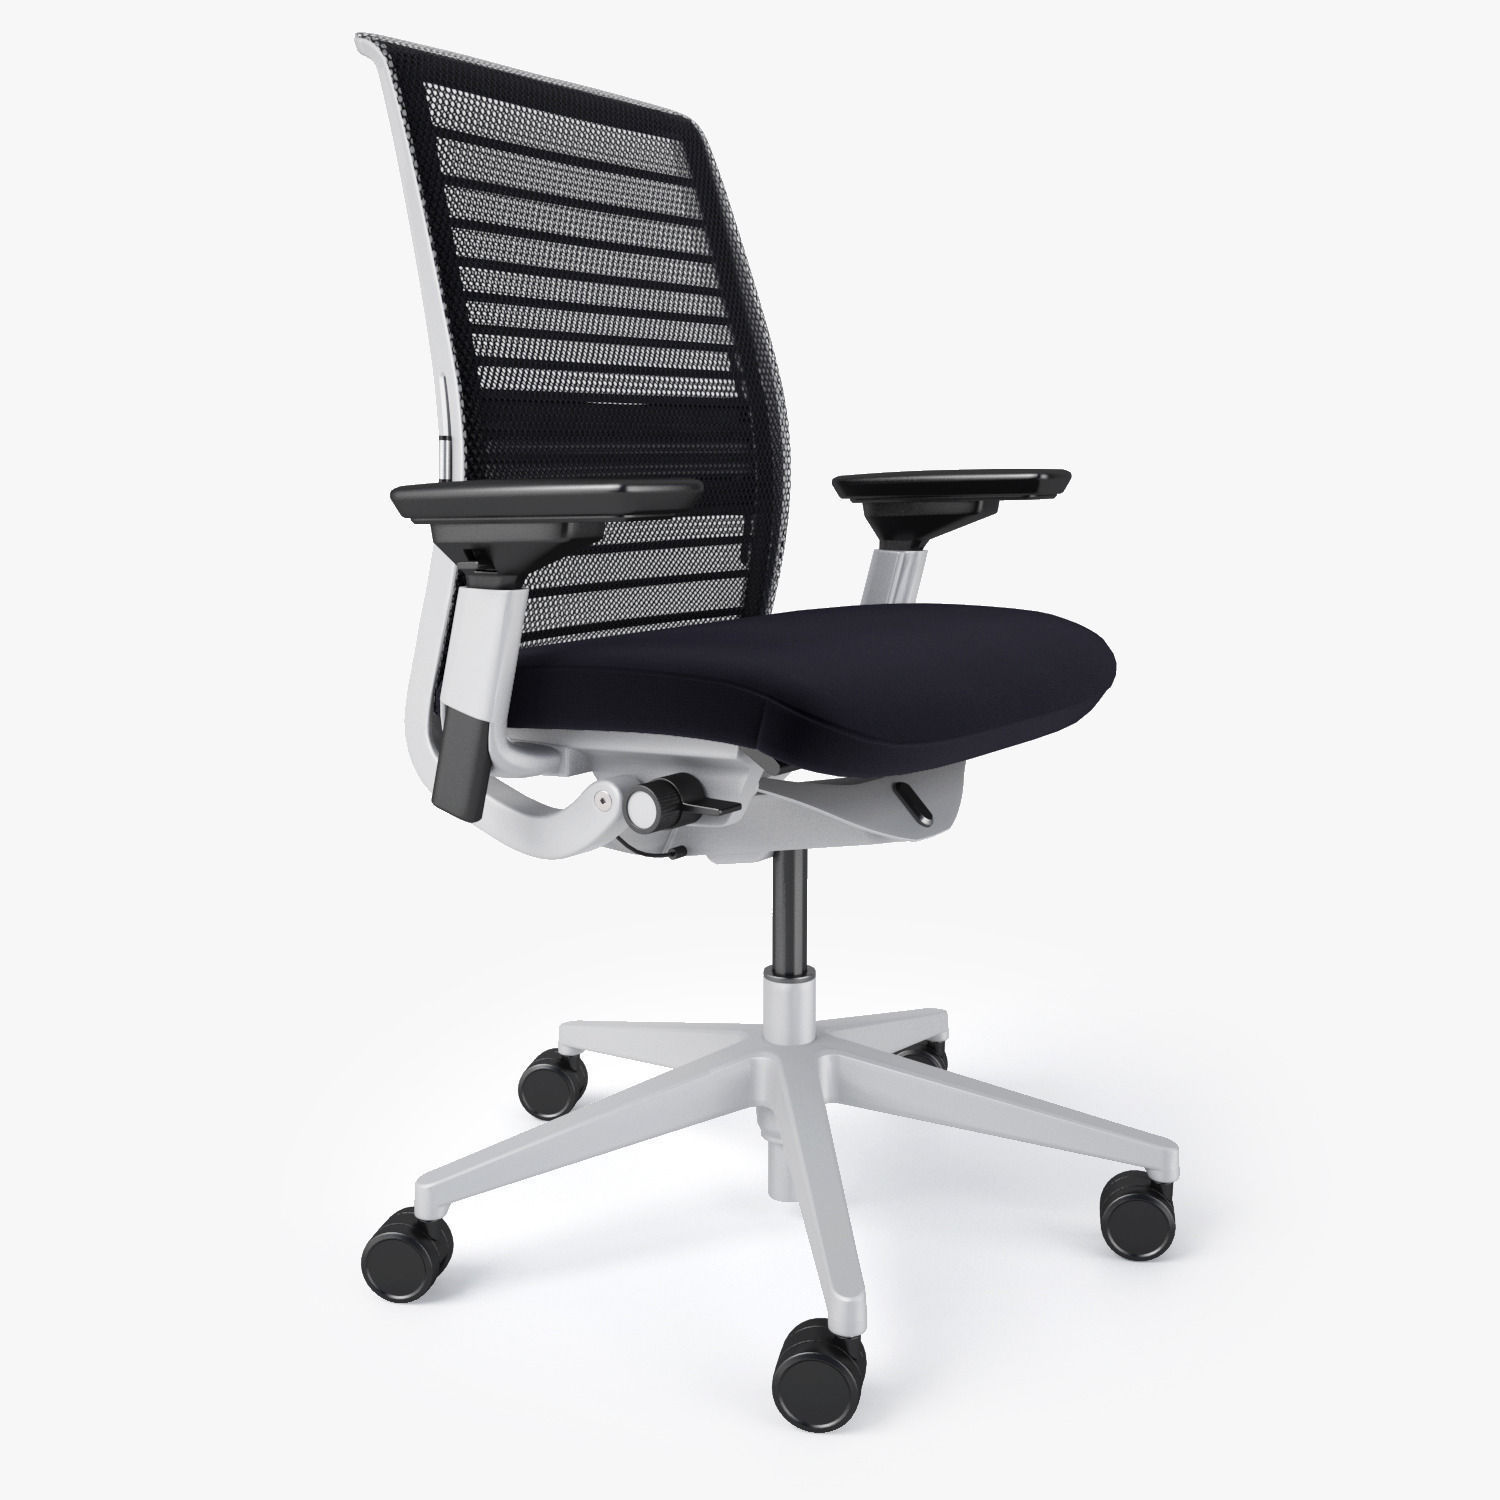 office max chair plastic cheap chairs steelcase think 3d model obj fbx mtl